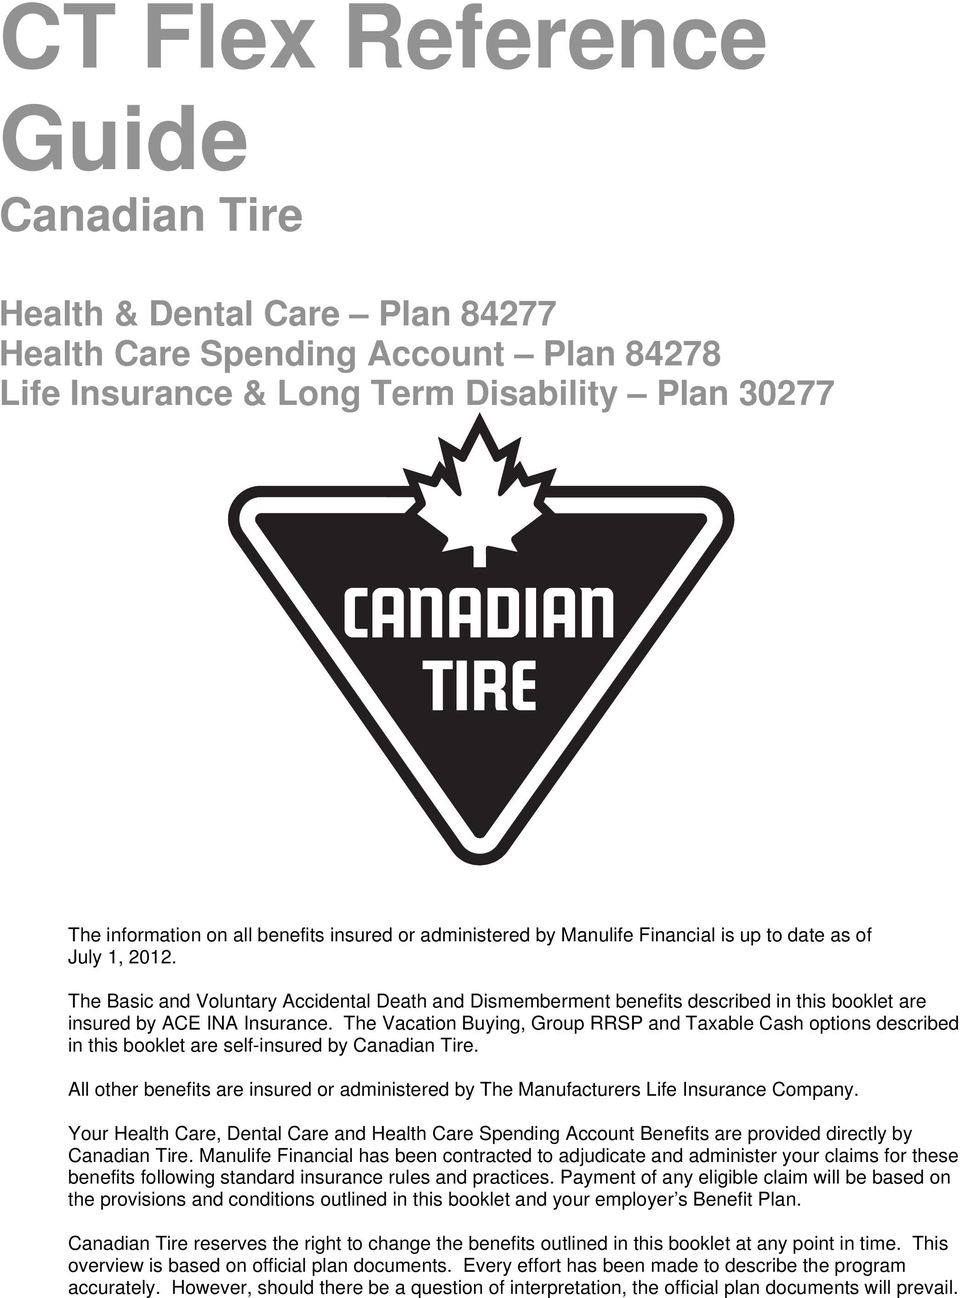 The Vacation Buying, Group RRSP and Taxable Cash options described in this booklet are self-insured by Canadian Tire.